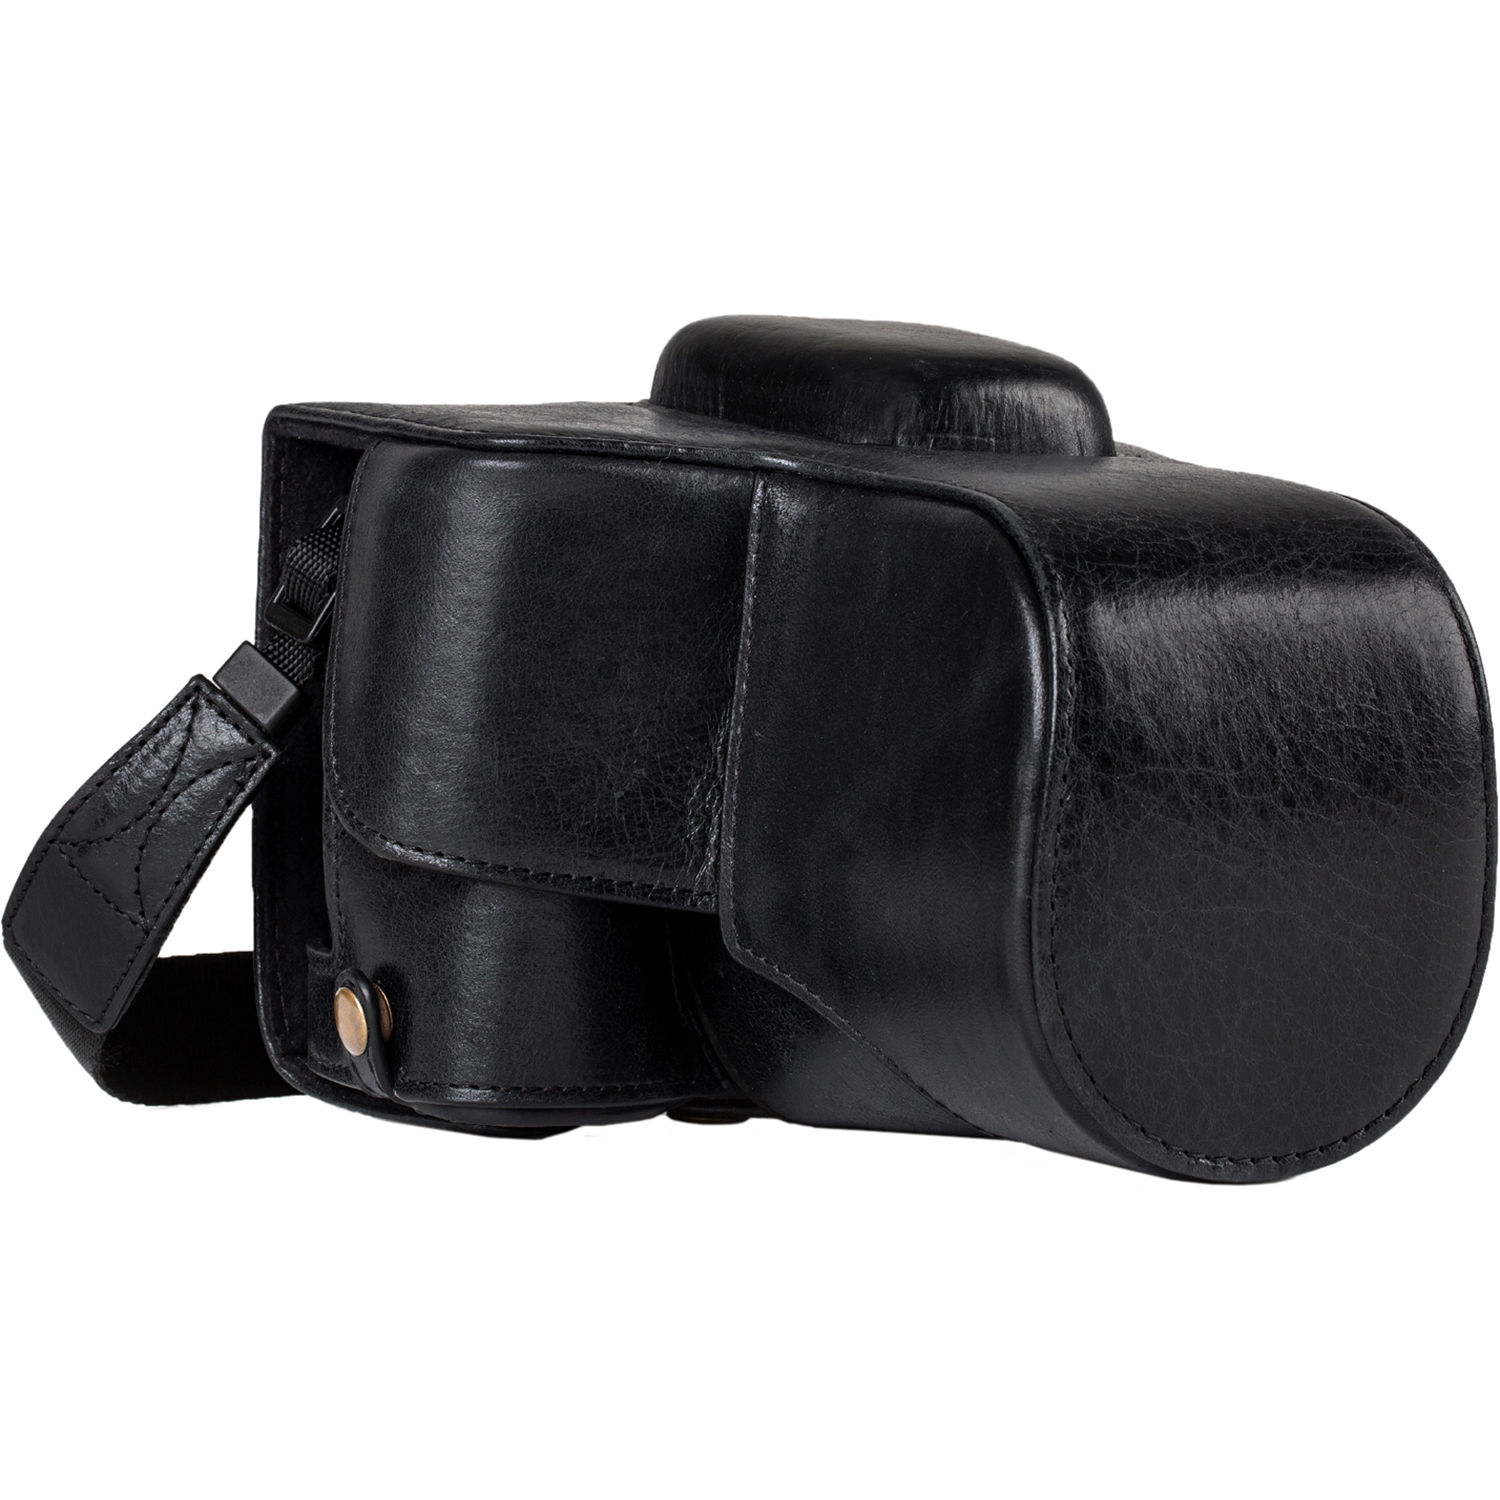 MegaGear Ever Ready Leather Case with Strap for Canon EOS Rebel T7i, 800D,  Kiss X9i, 77D, 9000D and 18-55mm (Black)